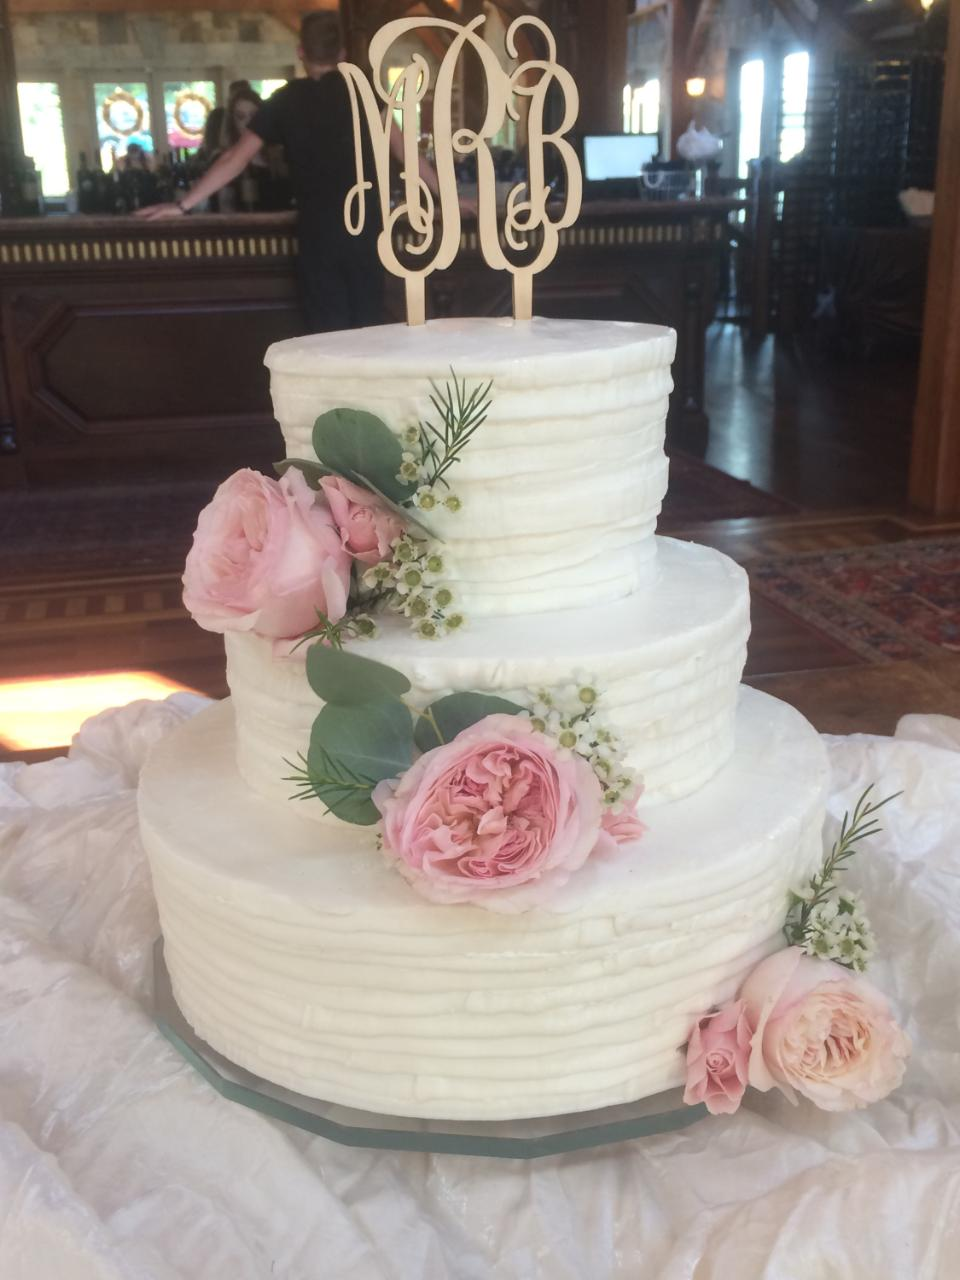 Blue Ridge Bakery - Wedding Cakes